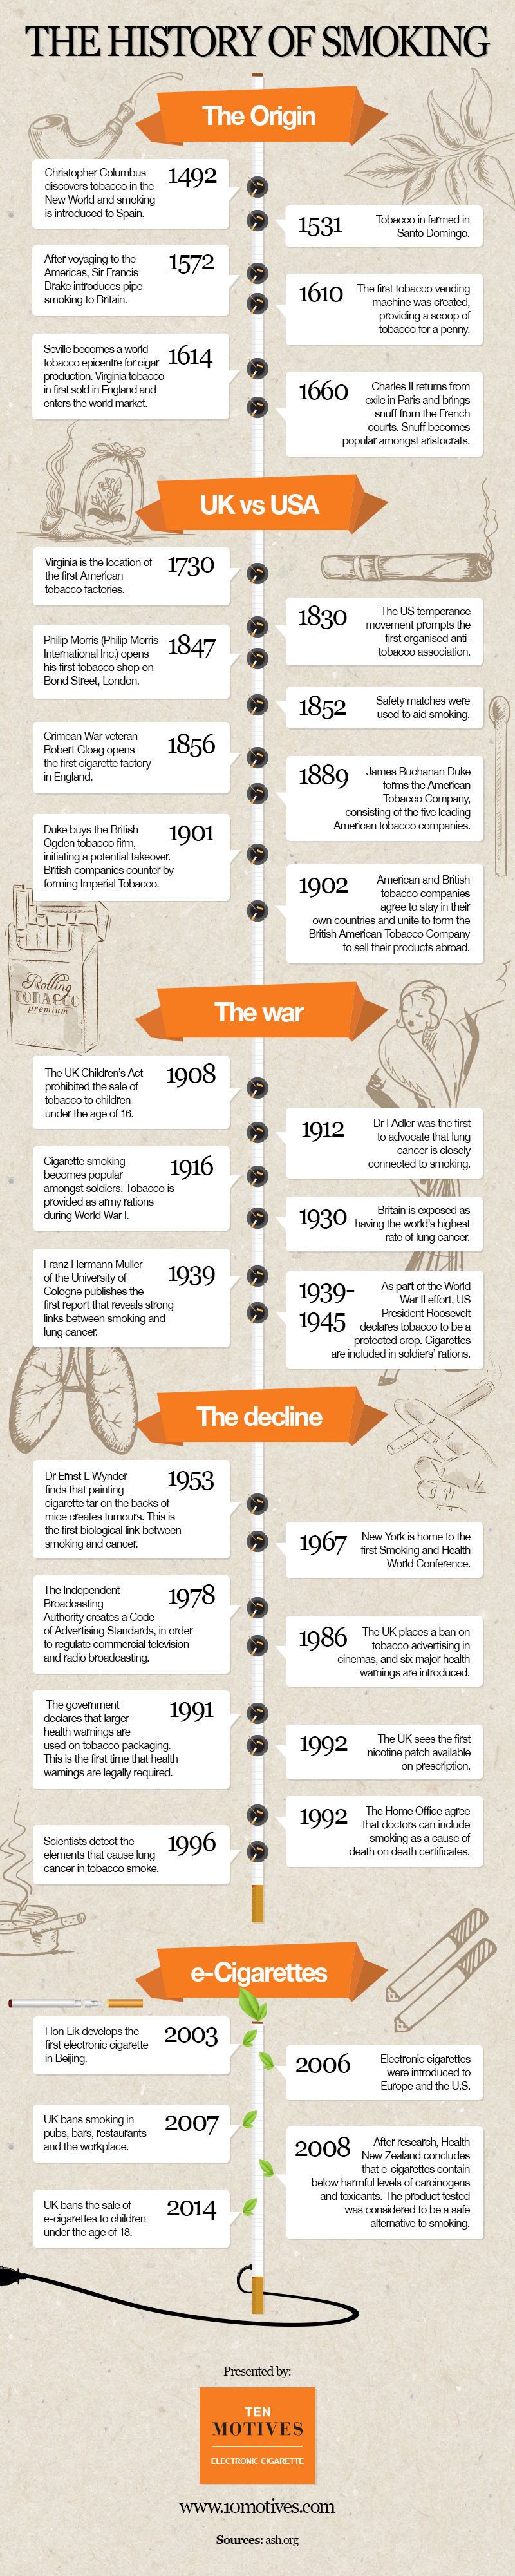 The History of Smoking